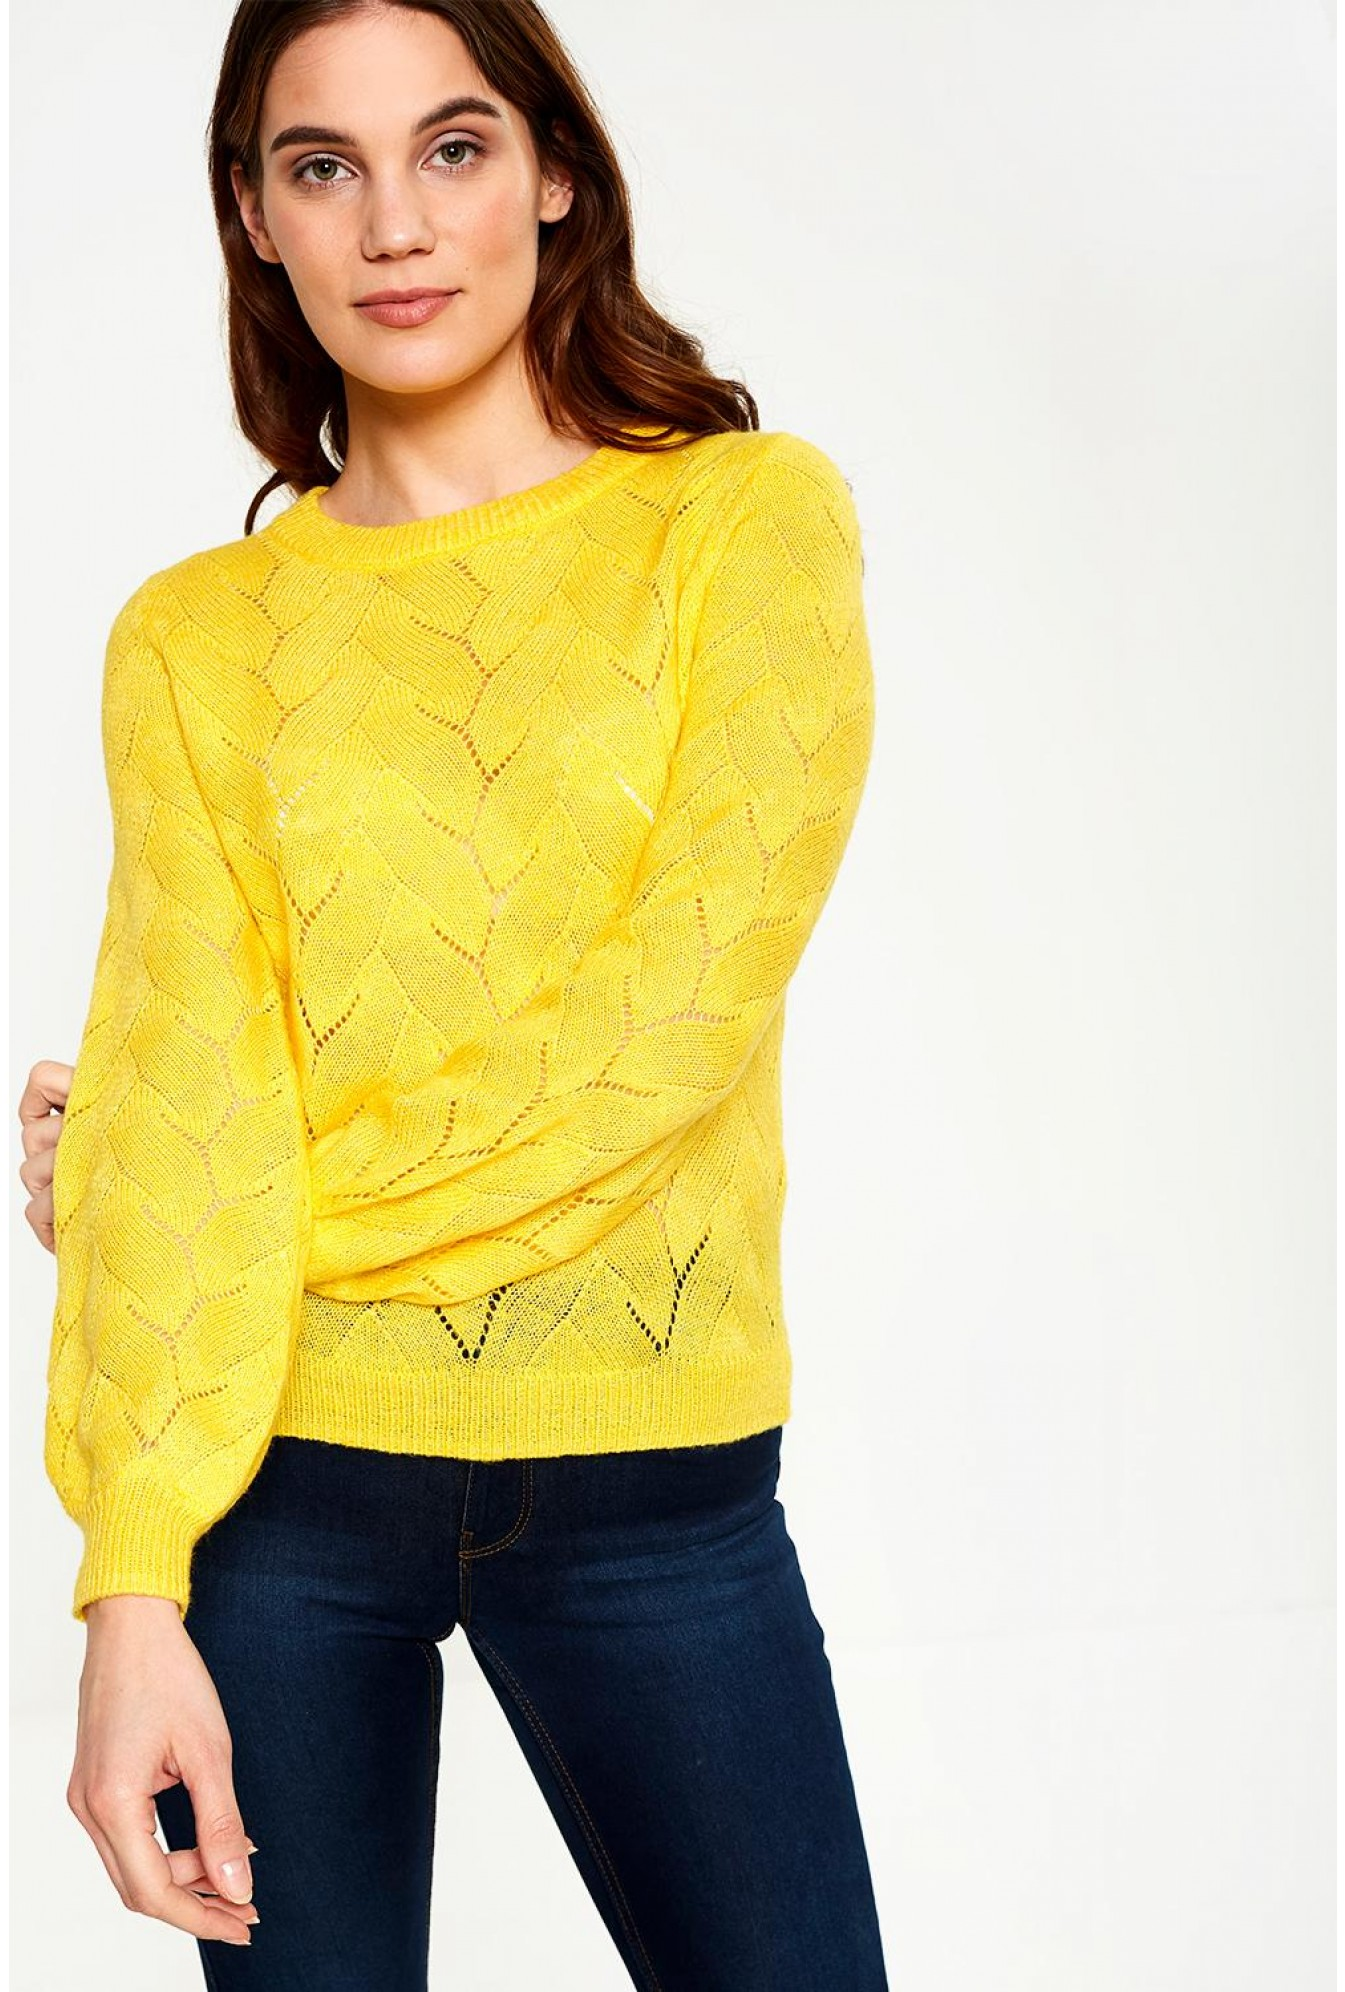 More Views. Peta Knit Jumper With Balloon Sleeve in Yellow 81c0cb8ca